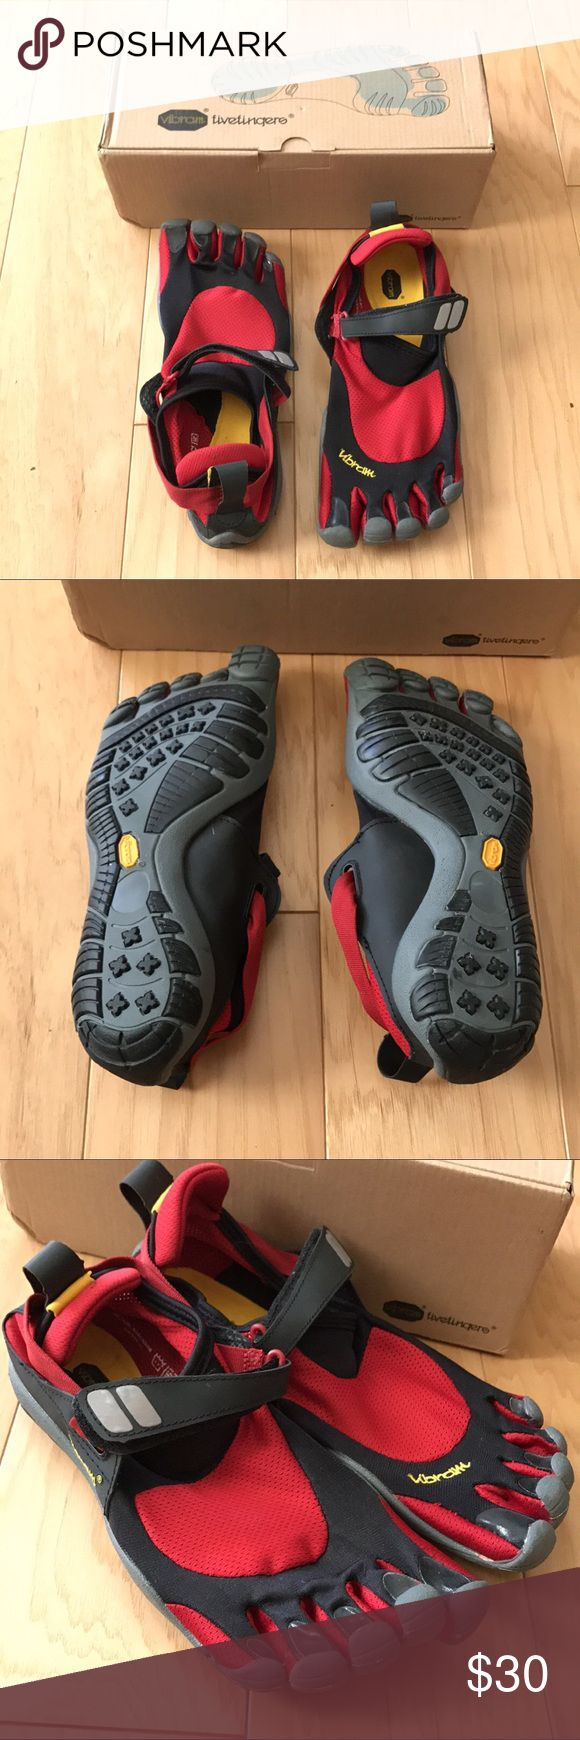 Vibram FiveFingers Shoes in Red New but missing tags. Purchases a few years ago but was too small and didn't have time to deal with returns. Size 42 and per Vibrams size chart, it fits US: 9.5-10. Check out the blue ones I have listed as well! Vibram Shoes Athletic Shoes